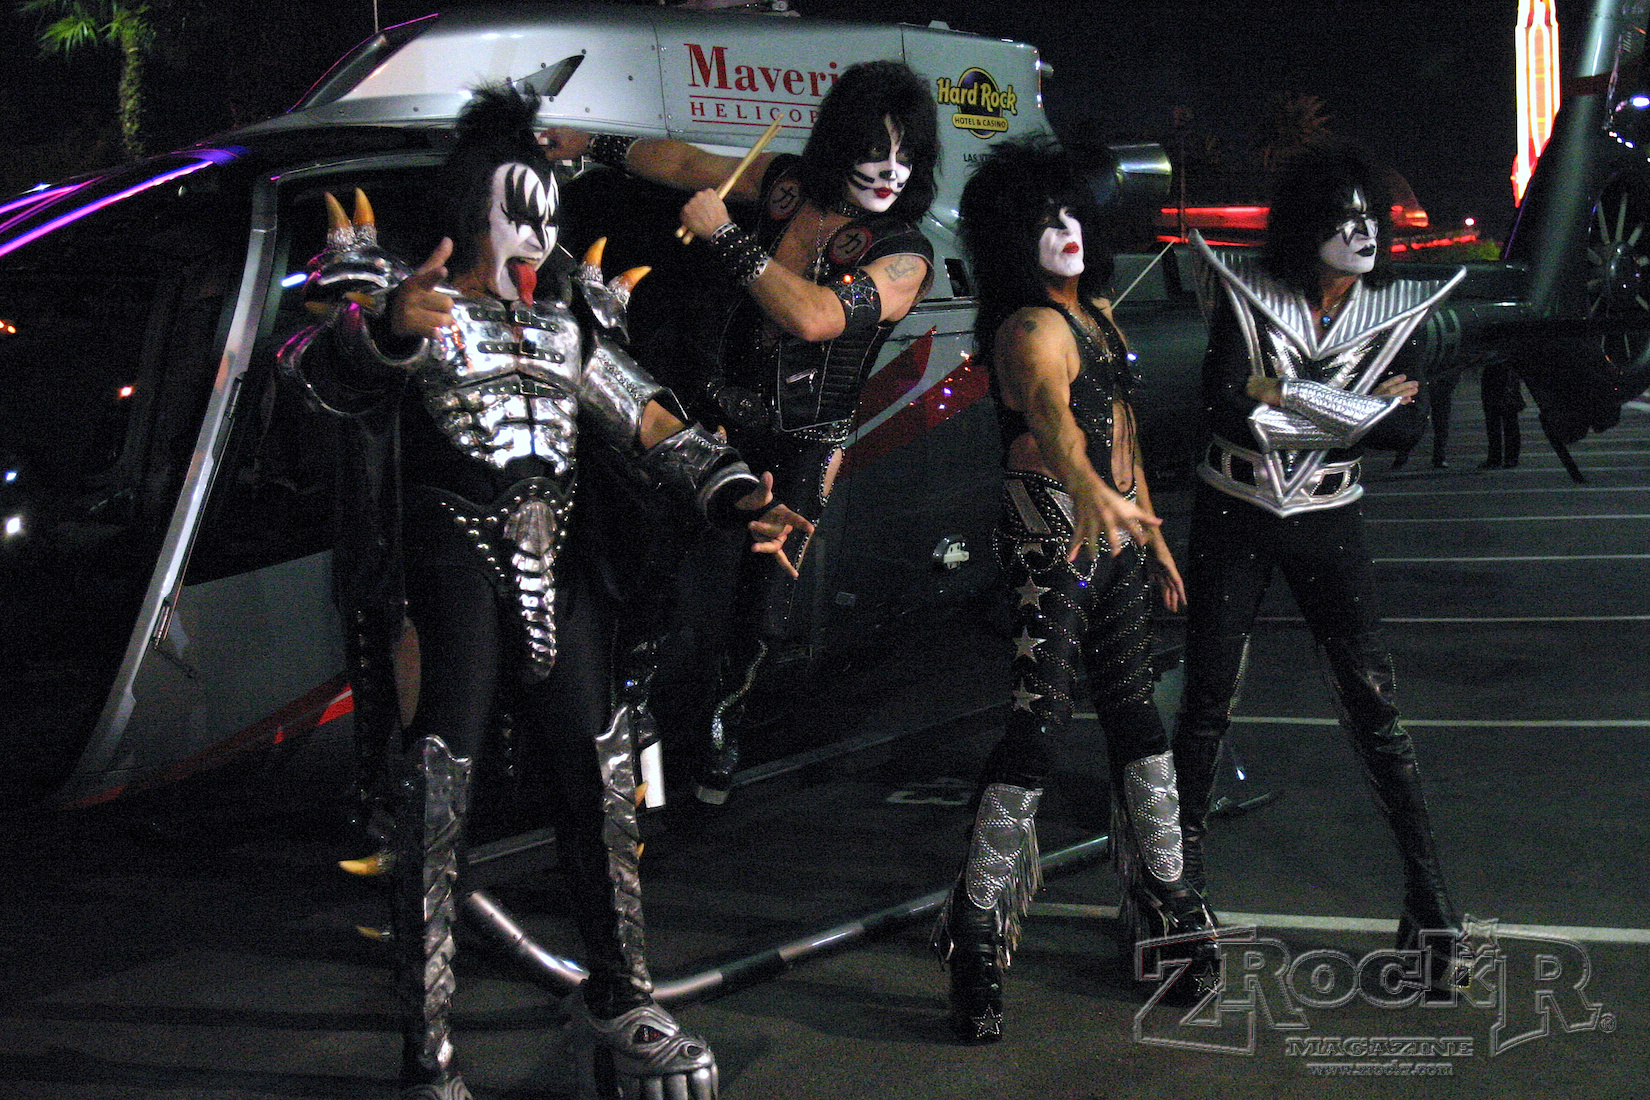 You Wanted The Best and You Got It Las Vegas!  The Hottest Band In The World!  KISS!